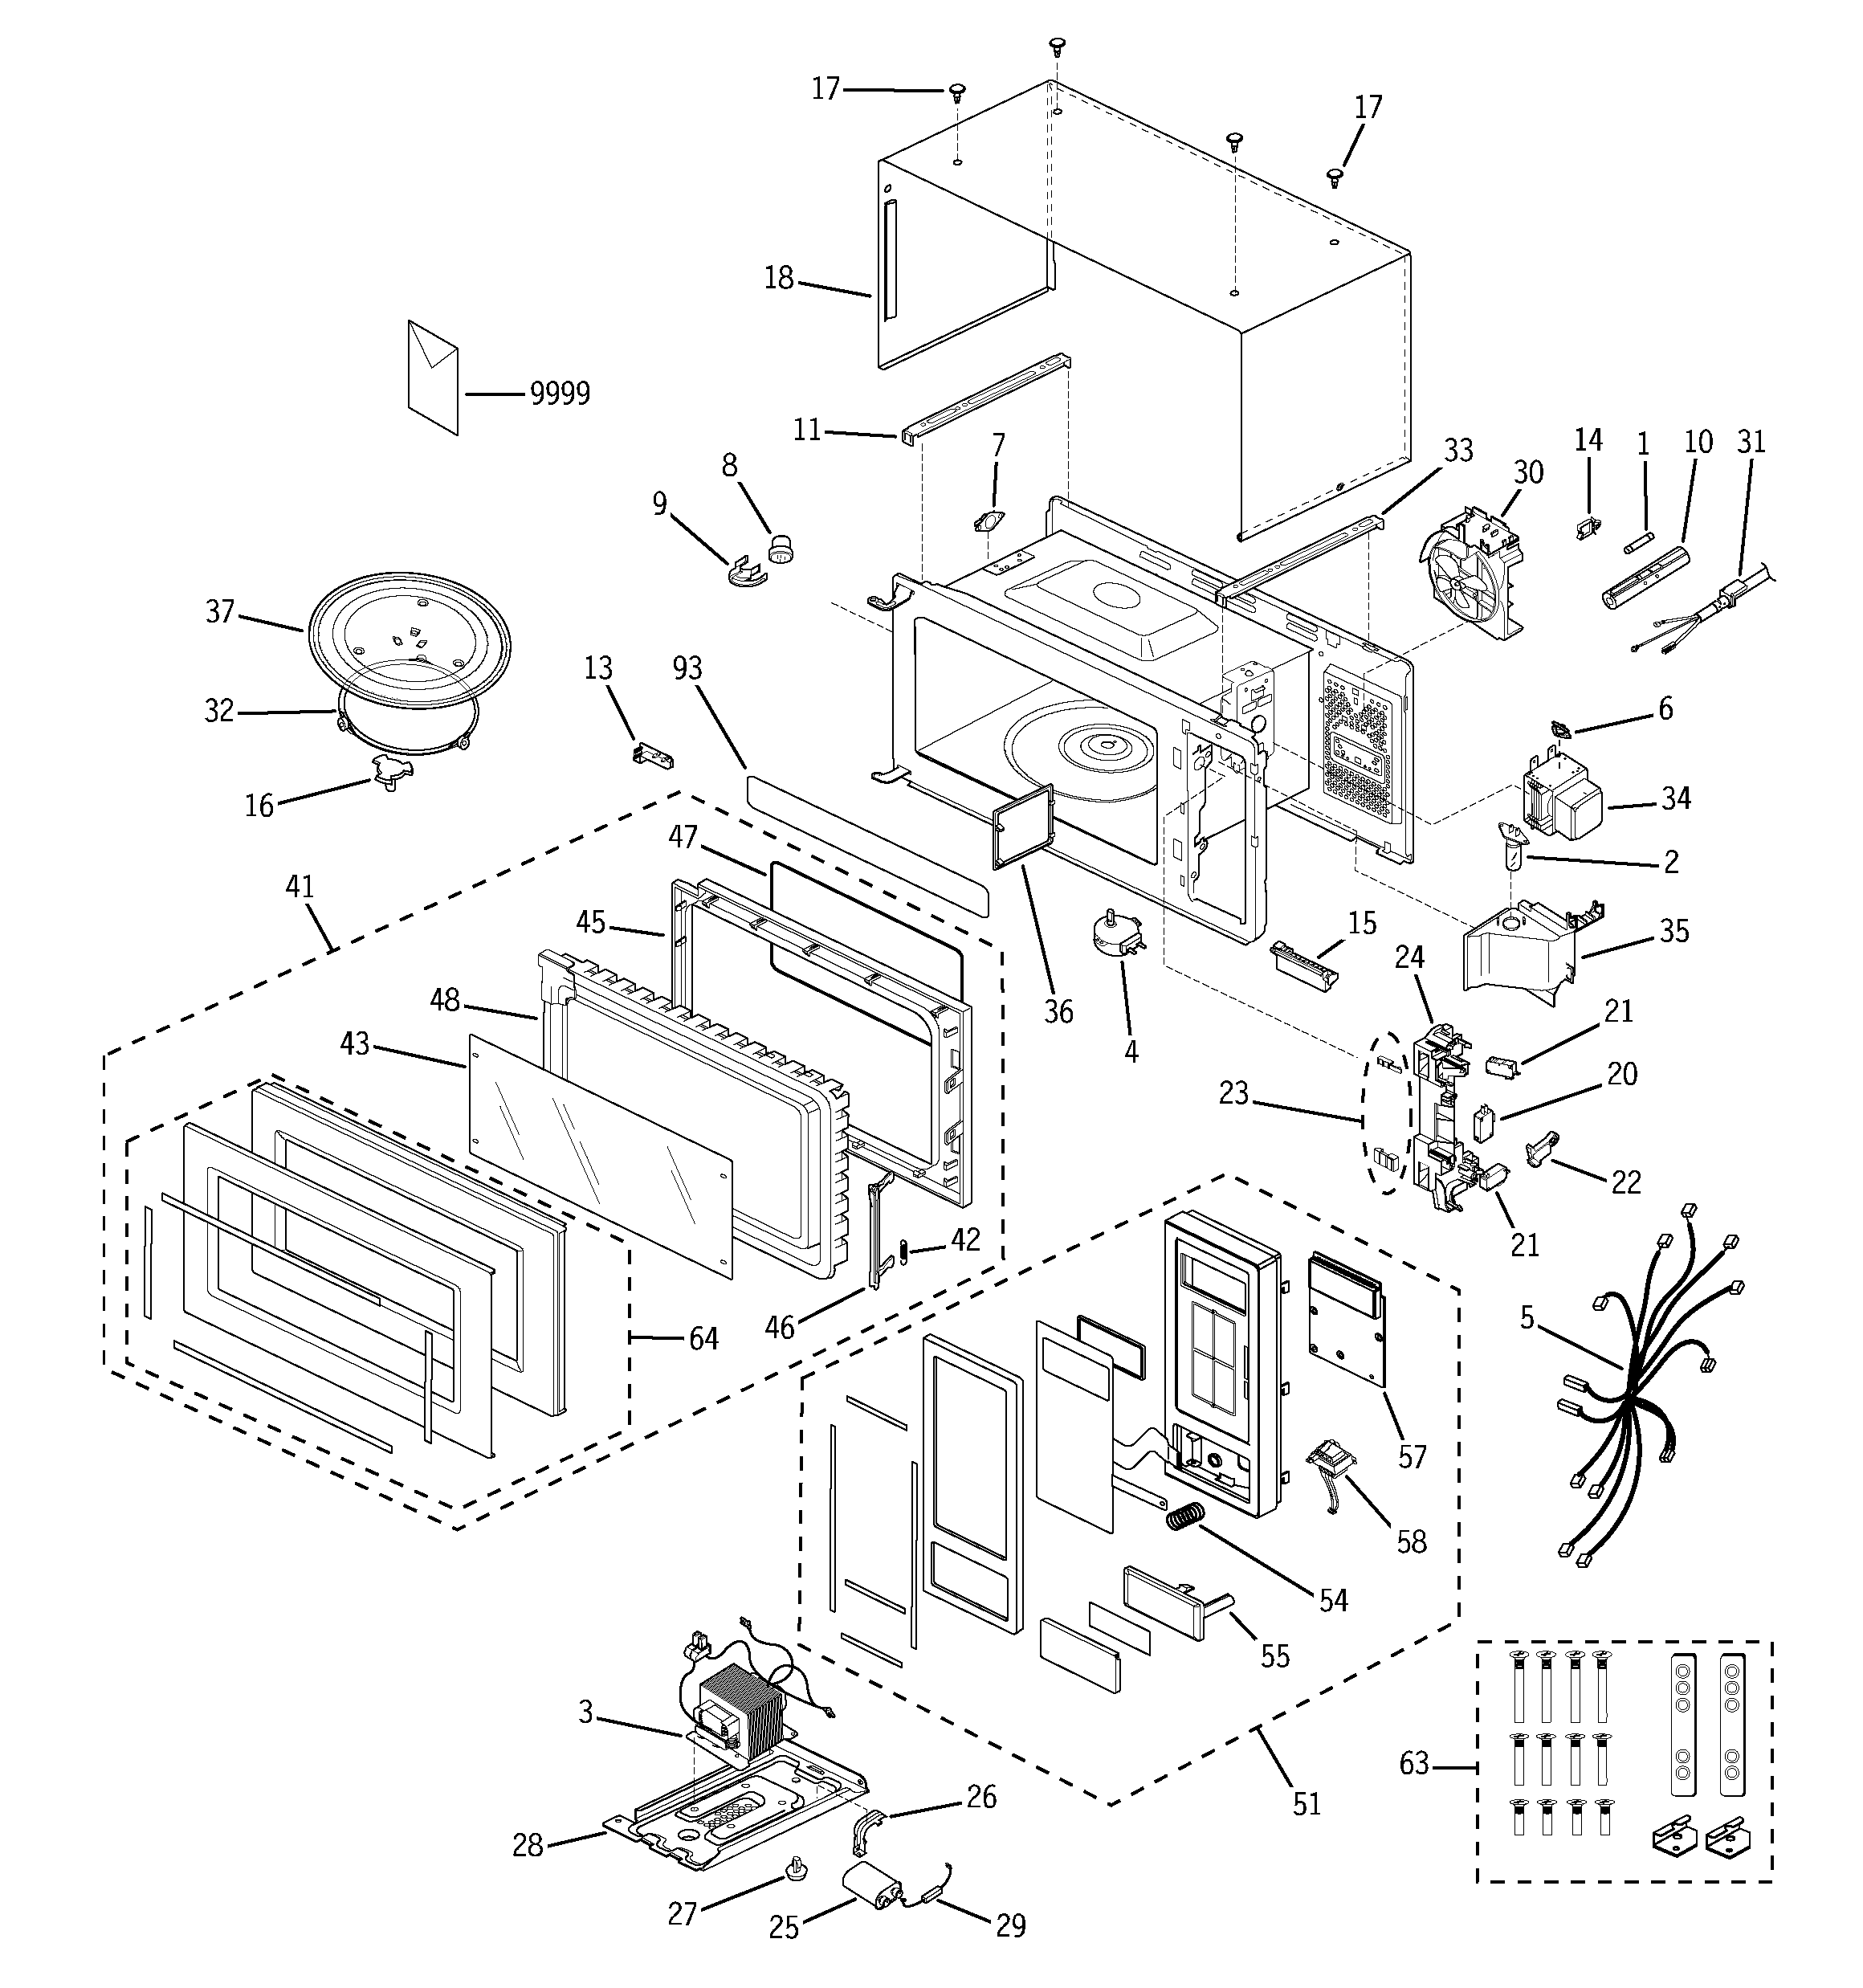 Microwave Oven Drawing At Getdrawings